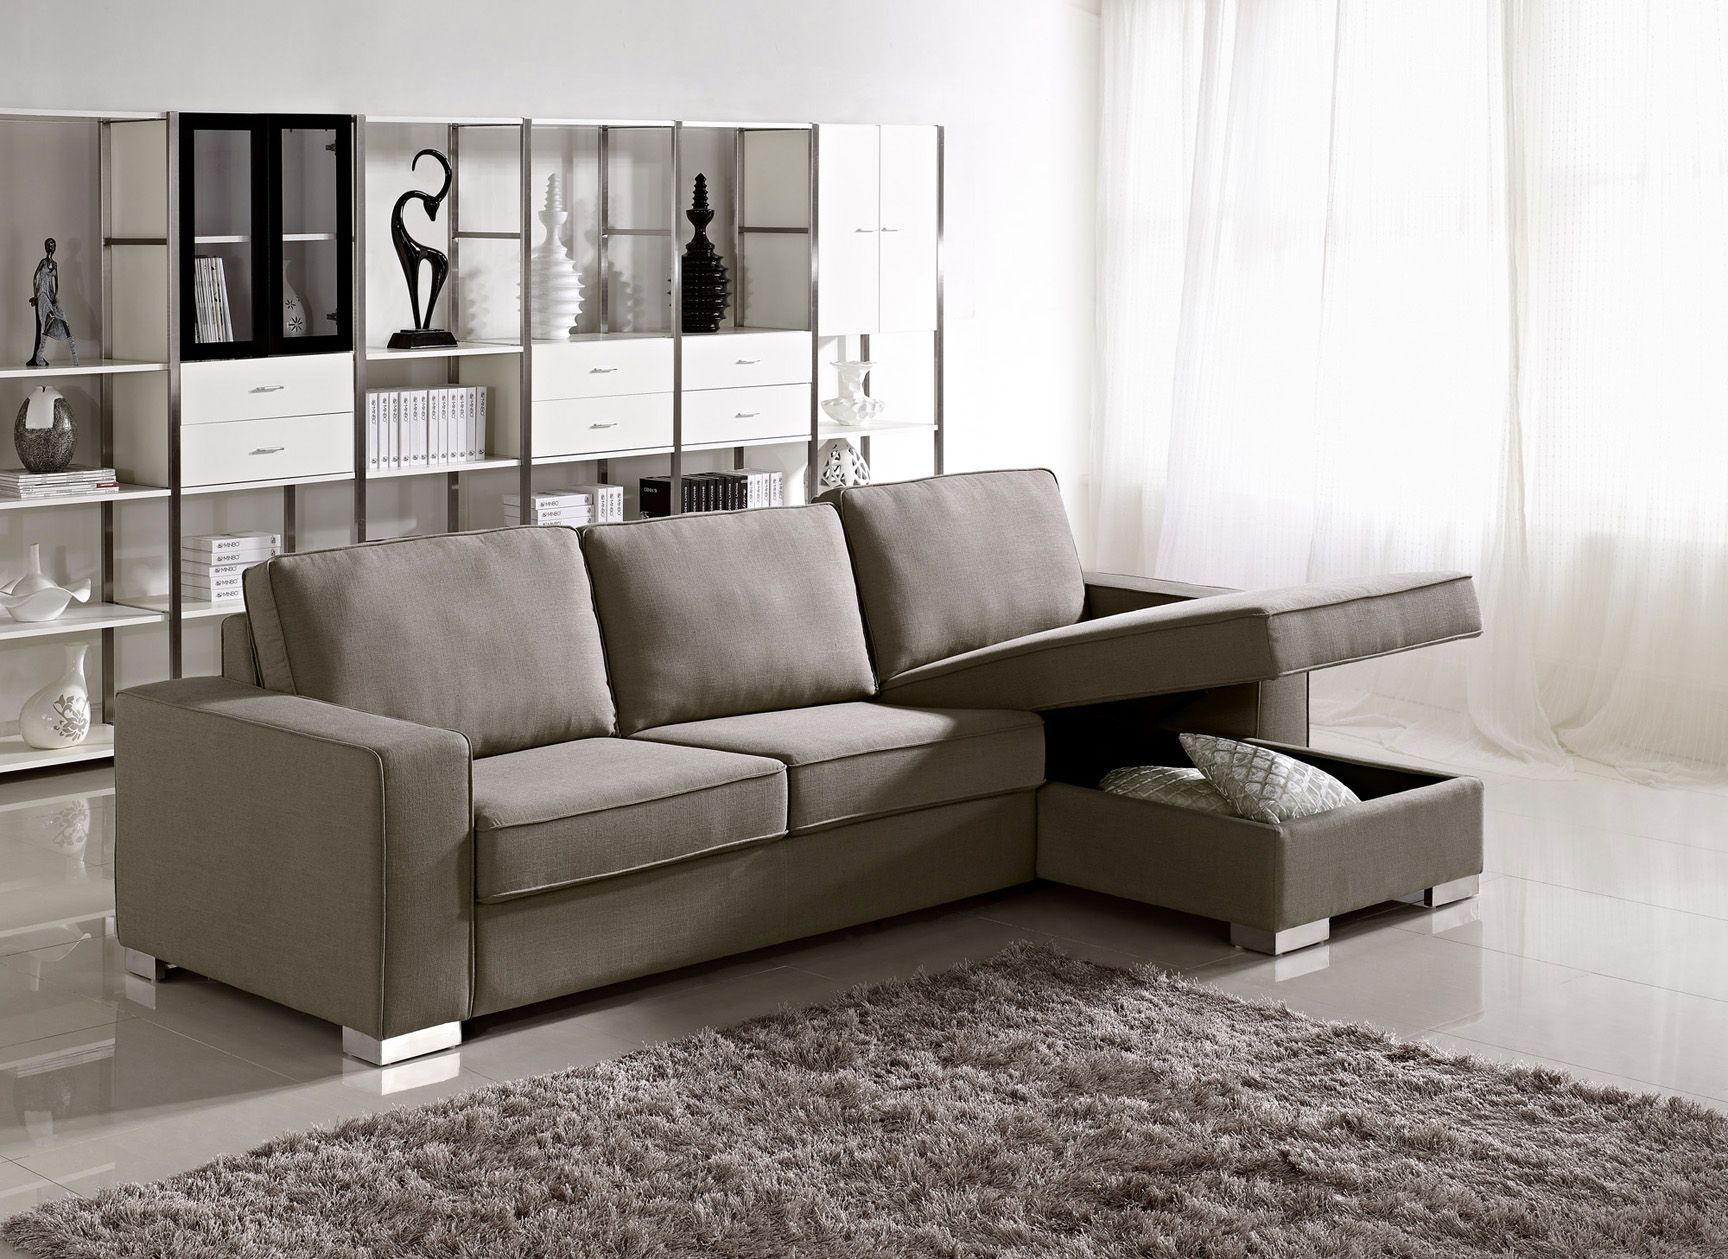 Apartment Size Sectional Sofa Beds | http://ml2r.com | Pinterest ...